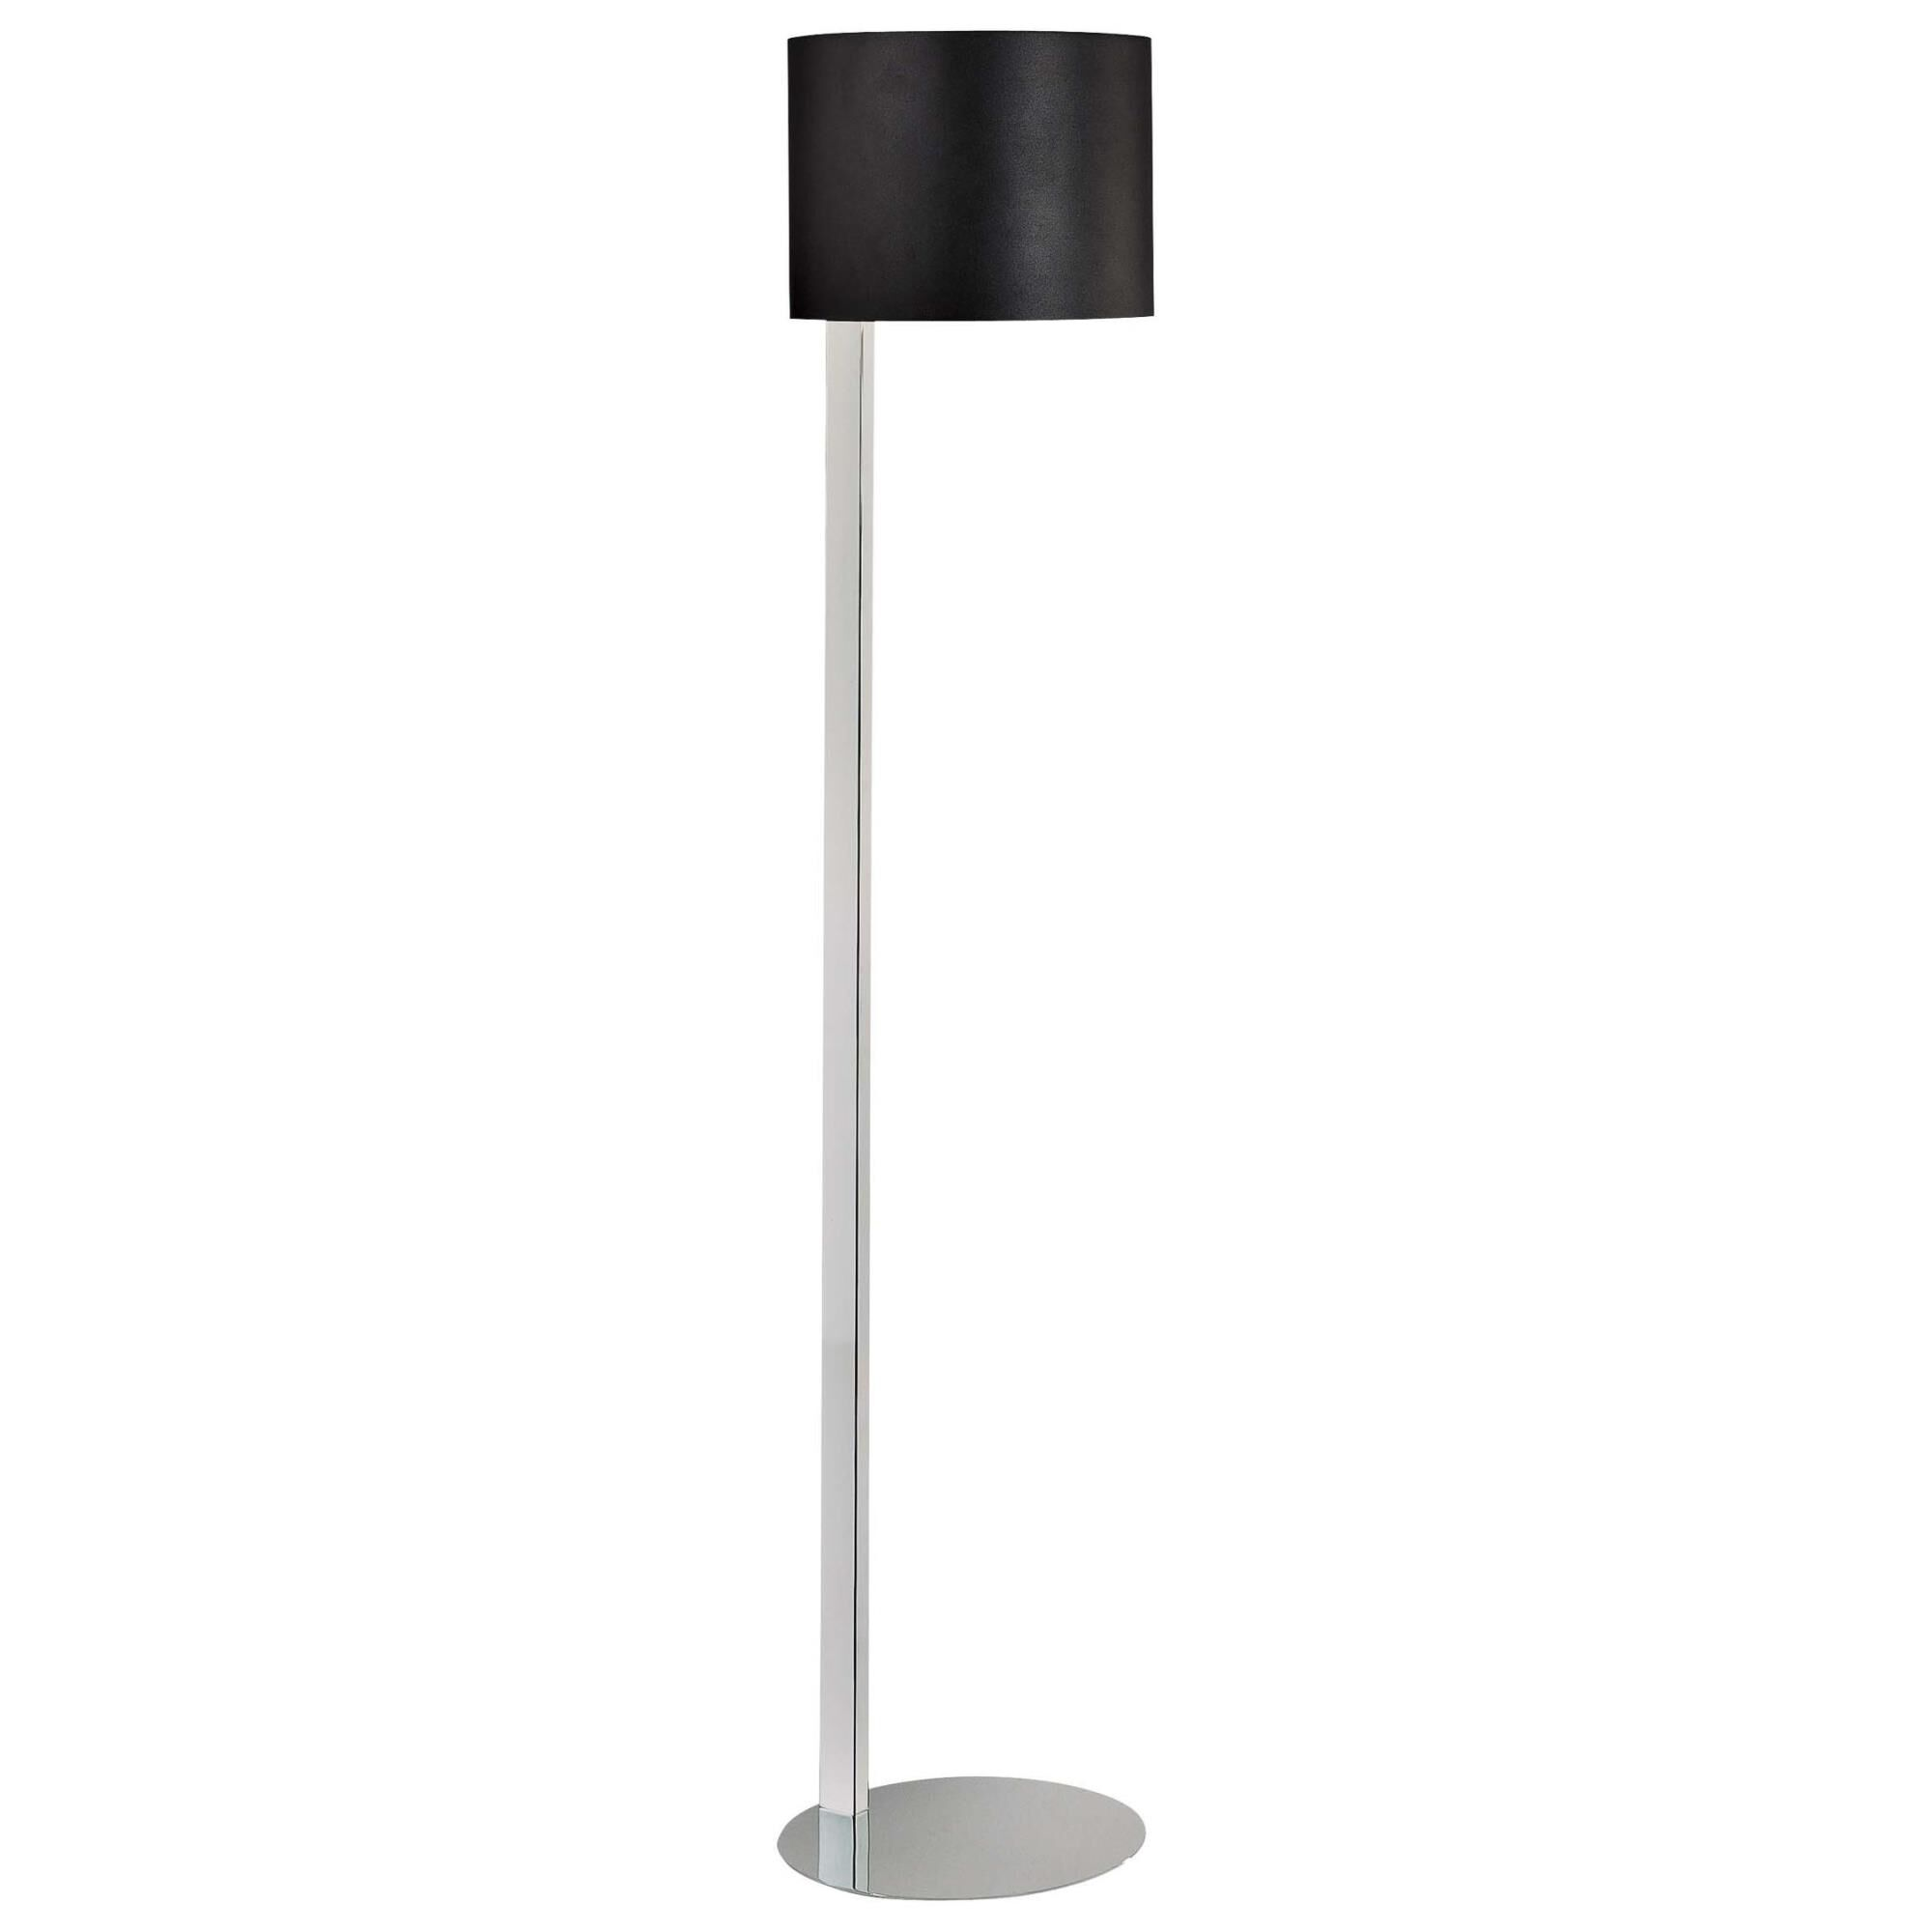 Kovacs Assumption 57 Inch Floor Lamp Assumption - P491-2-077 - Modern Contemporary